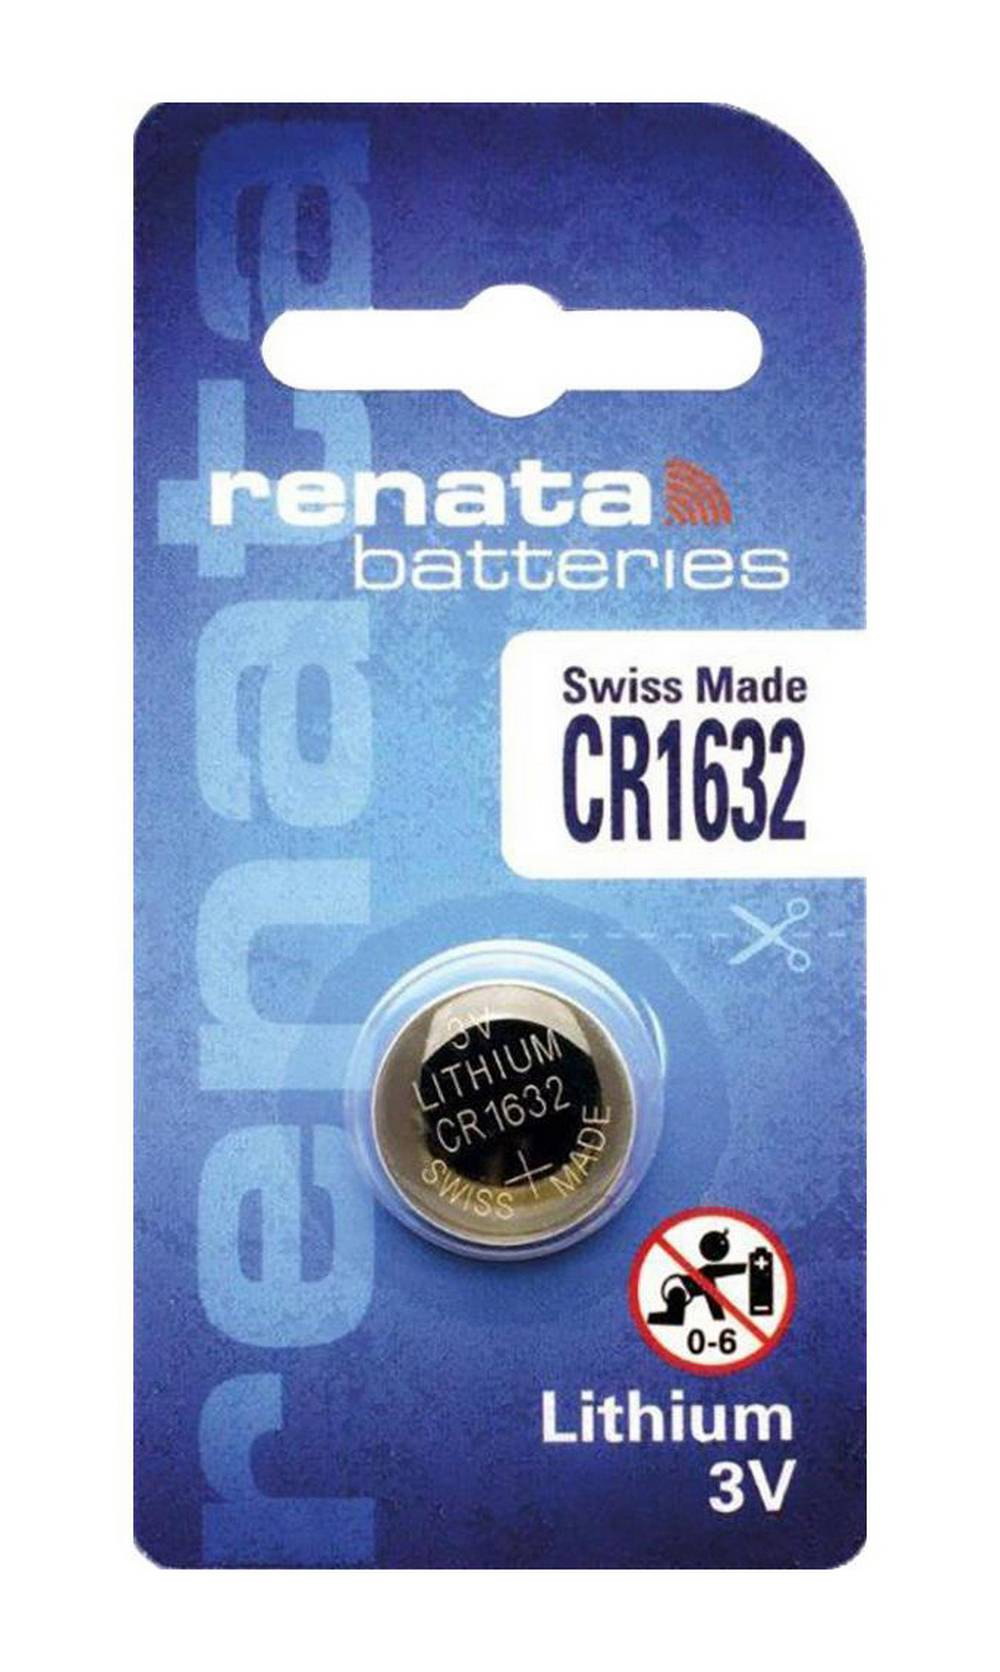 Buttoncell Lithium Electronics Renata CR1632 Τεμ. 1